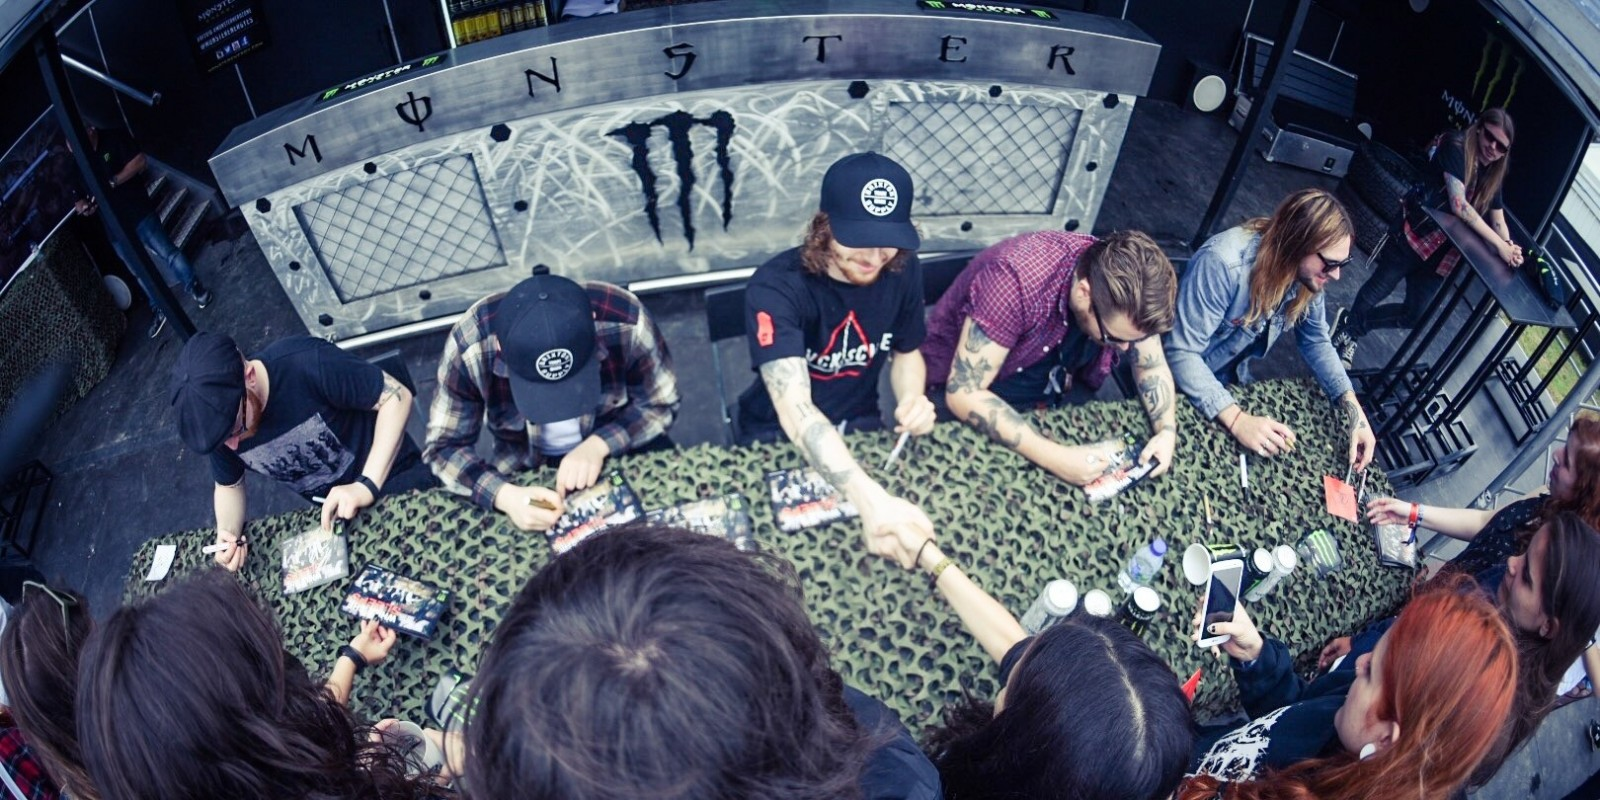 While She Sleeps Signing session and live show at Resurrection Fest